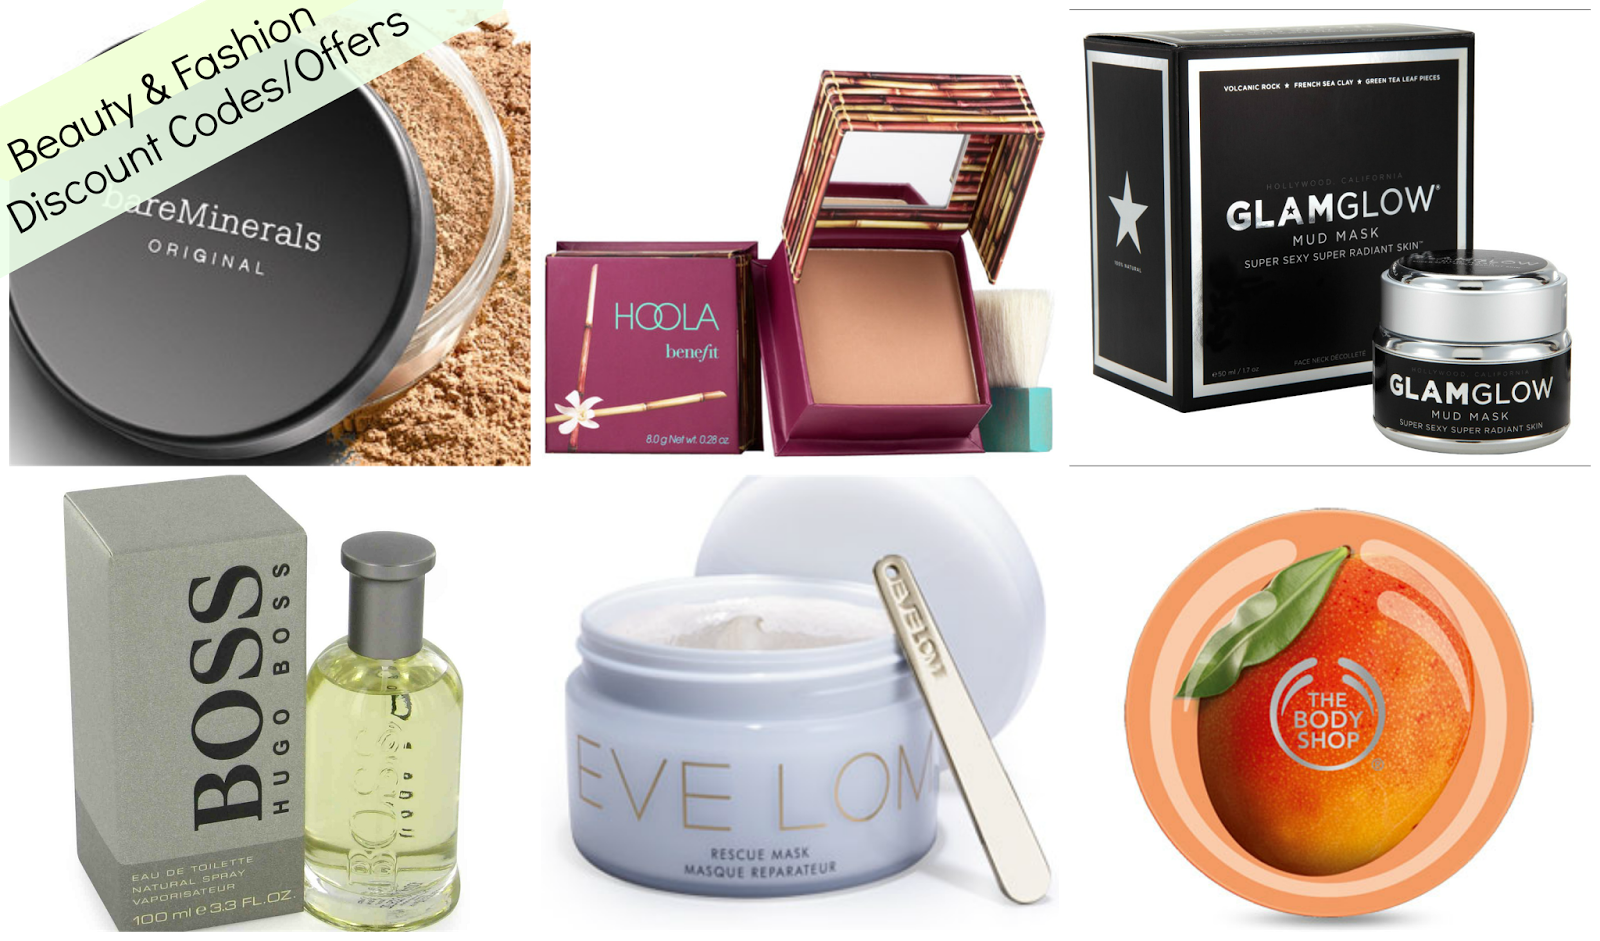 Beauty and Fashion Discount Codes/Offers #2